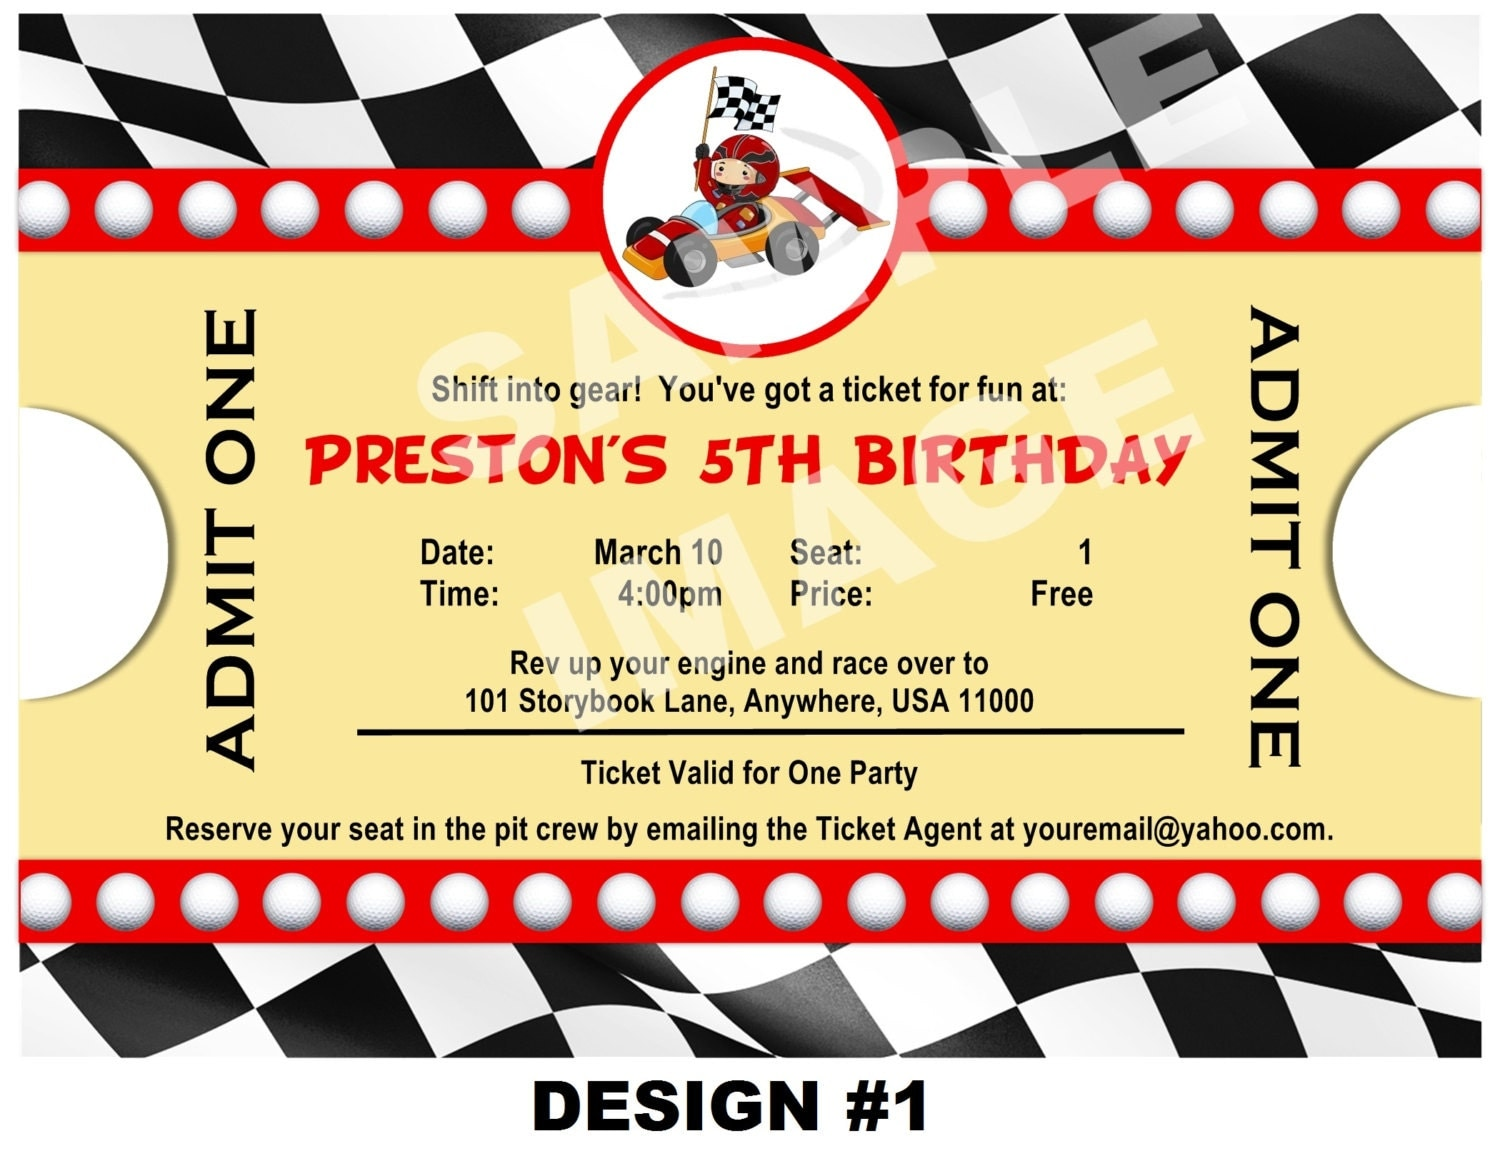 race car invitation ticket invitation party printable, Birthday invitations